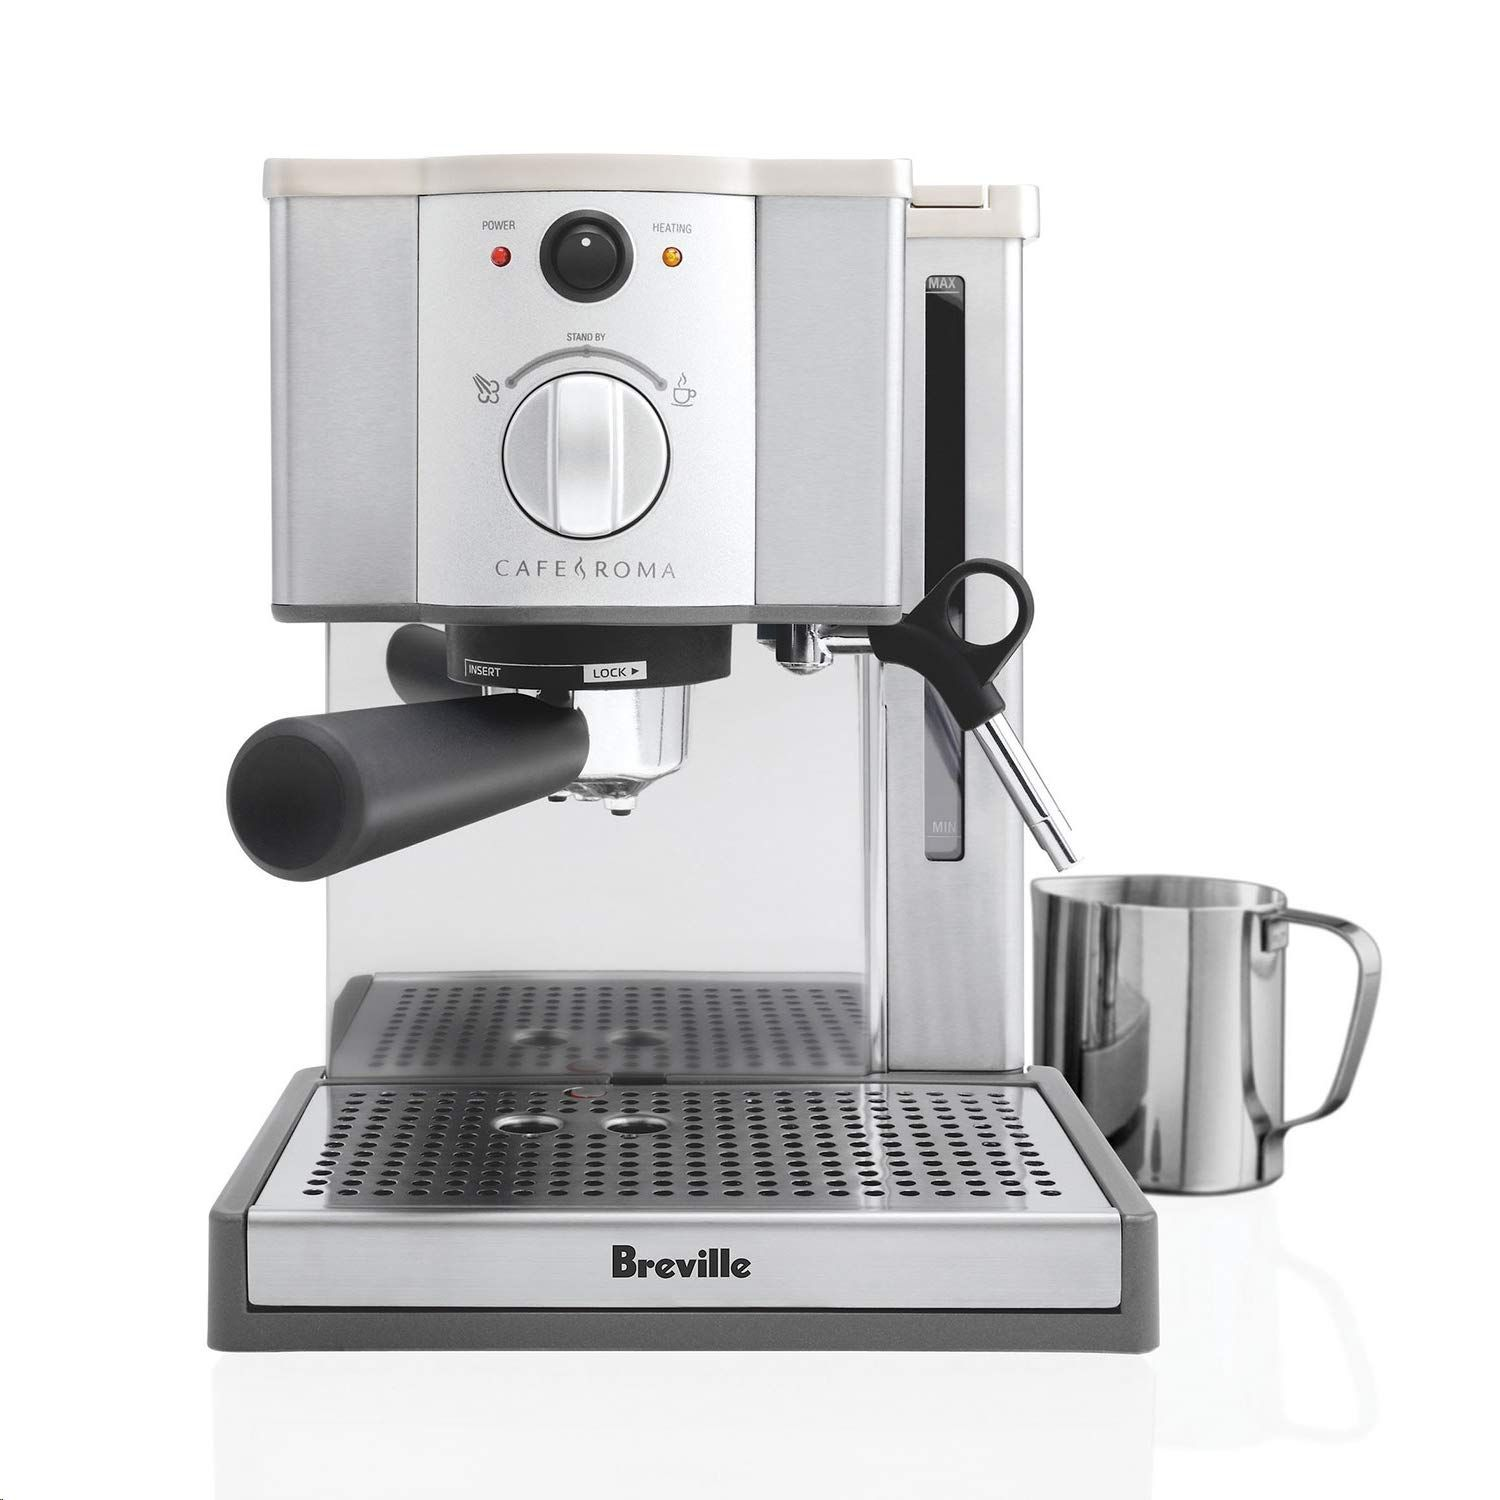 Breville Cafe Roma Black Friday Sale And Review 2019 Breville Cafe Roma Espresso Machine Best Espresso Machine Breville Espresso Machine